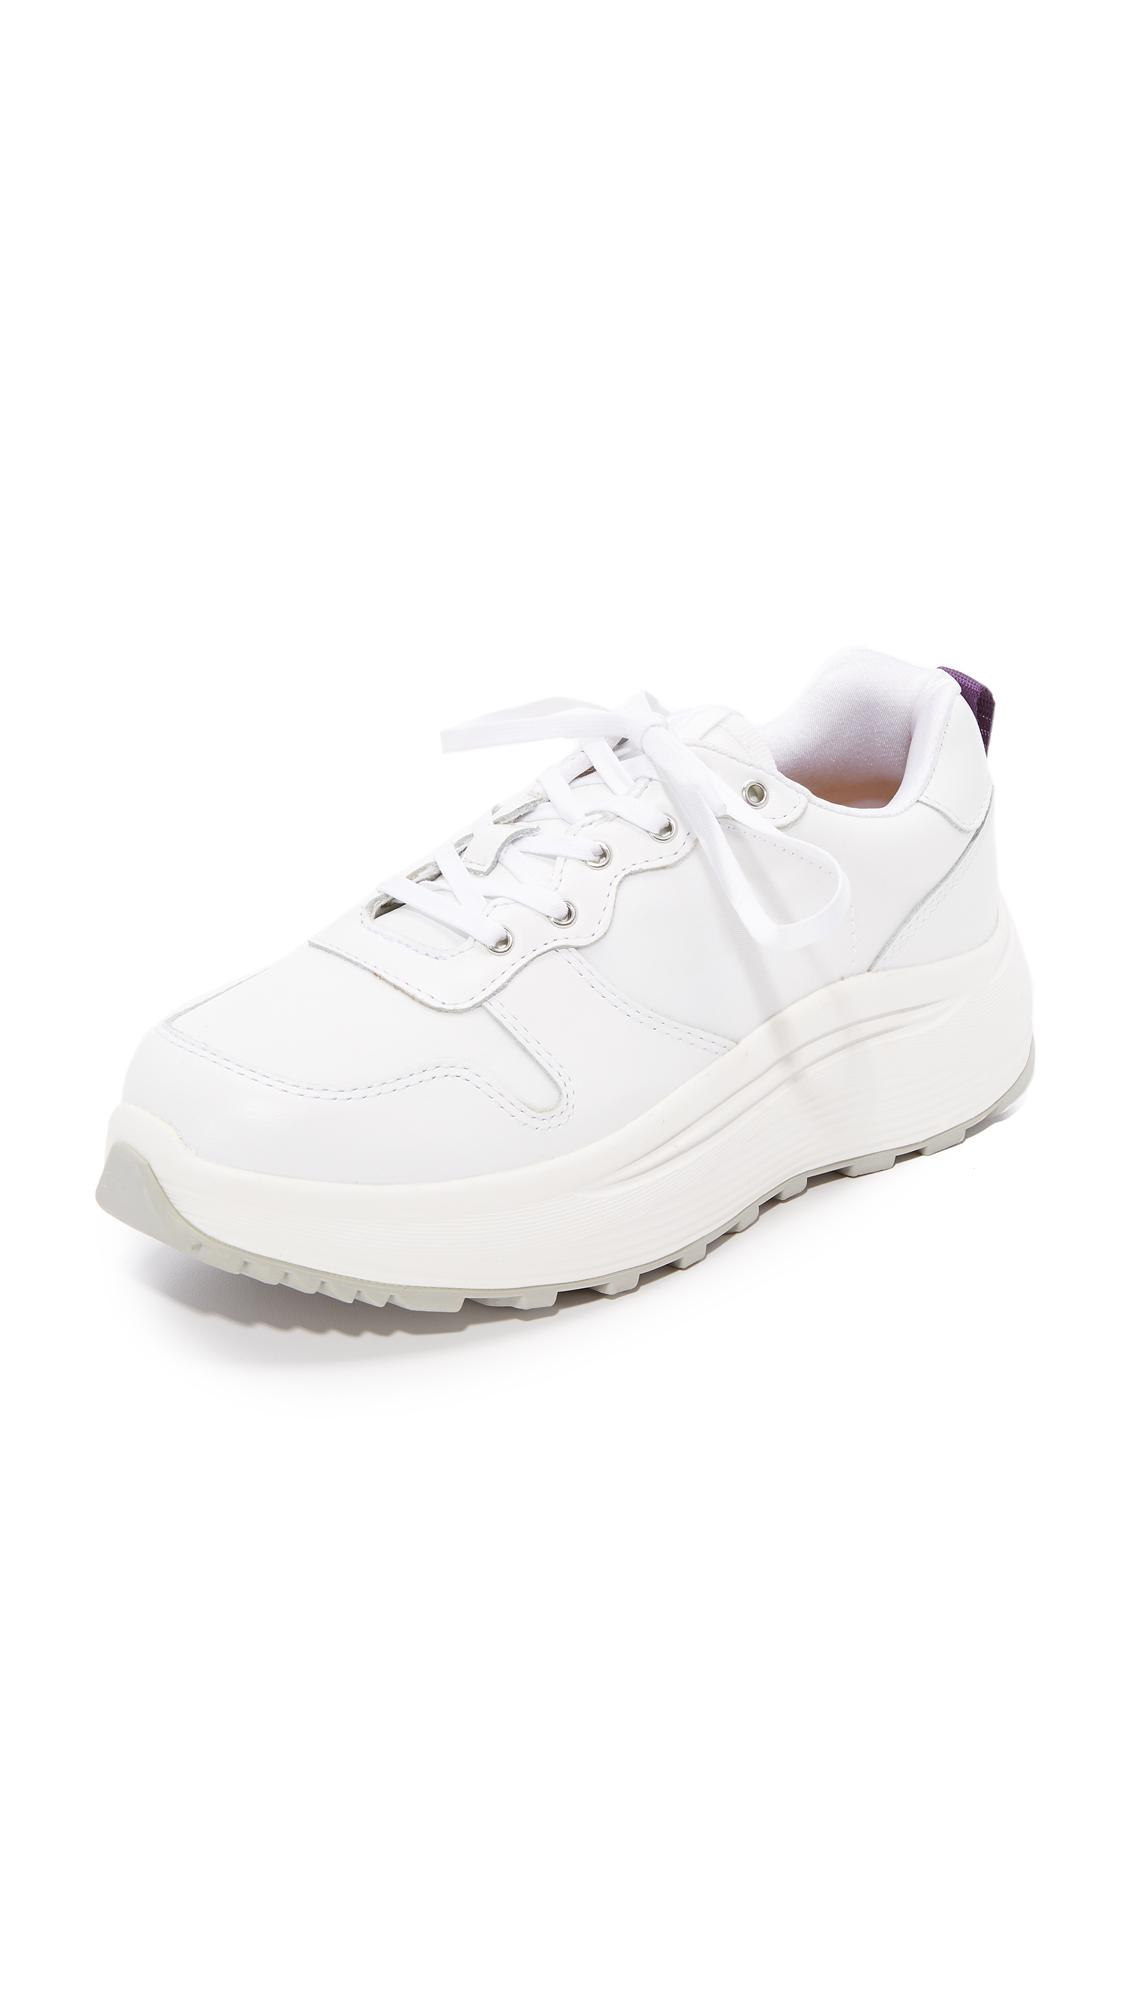 Eytys Leather Jet Combo Sneakers in